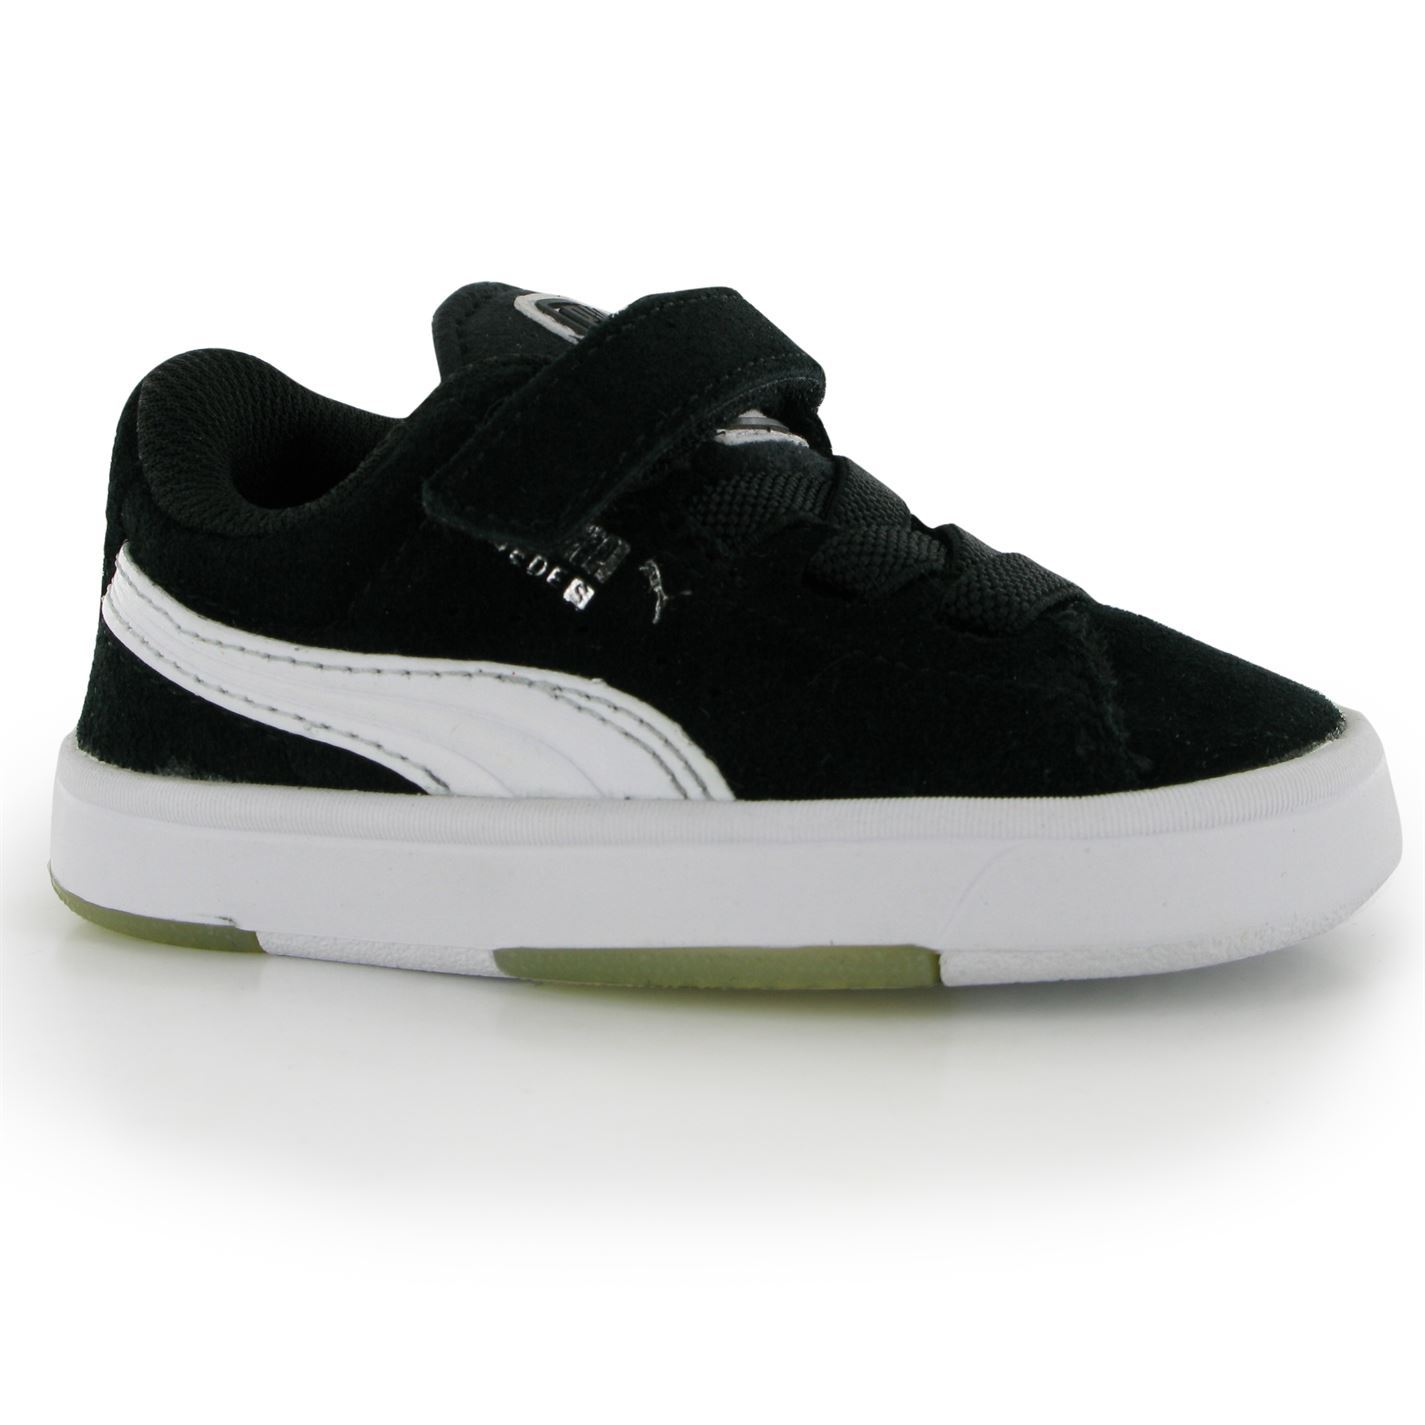 Led Shoes Sports Direct